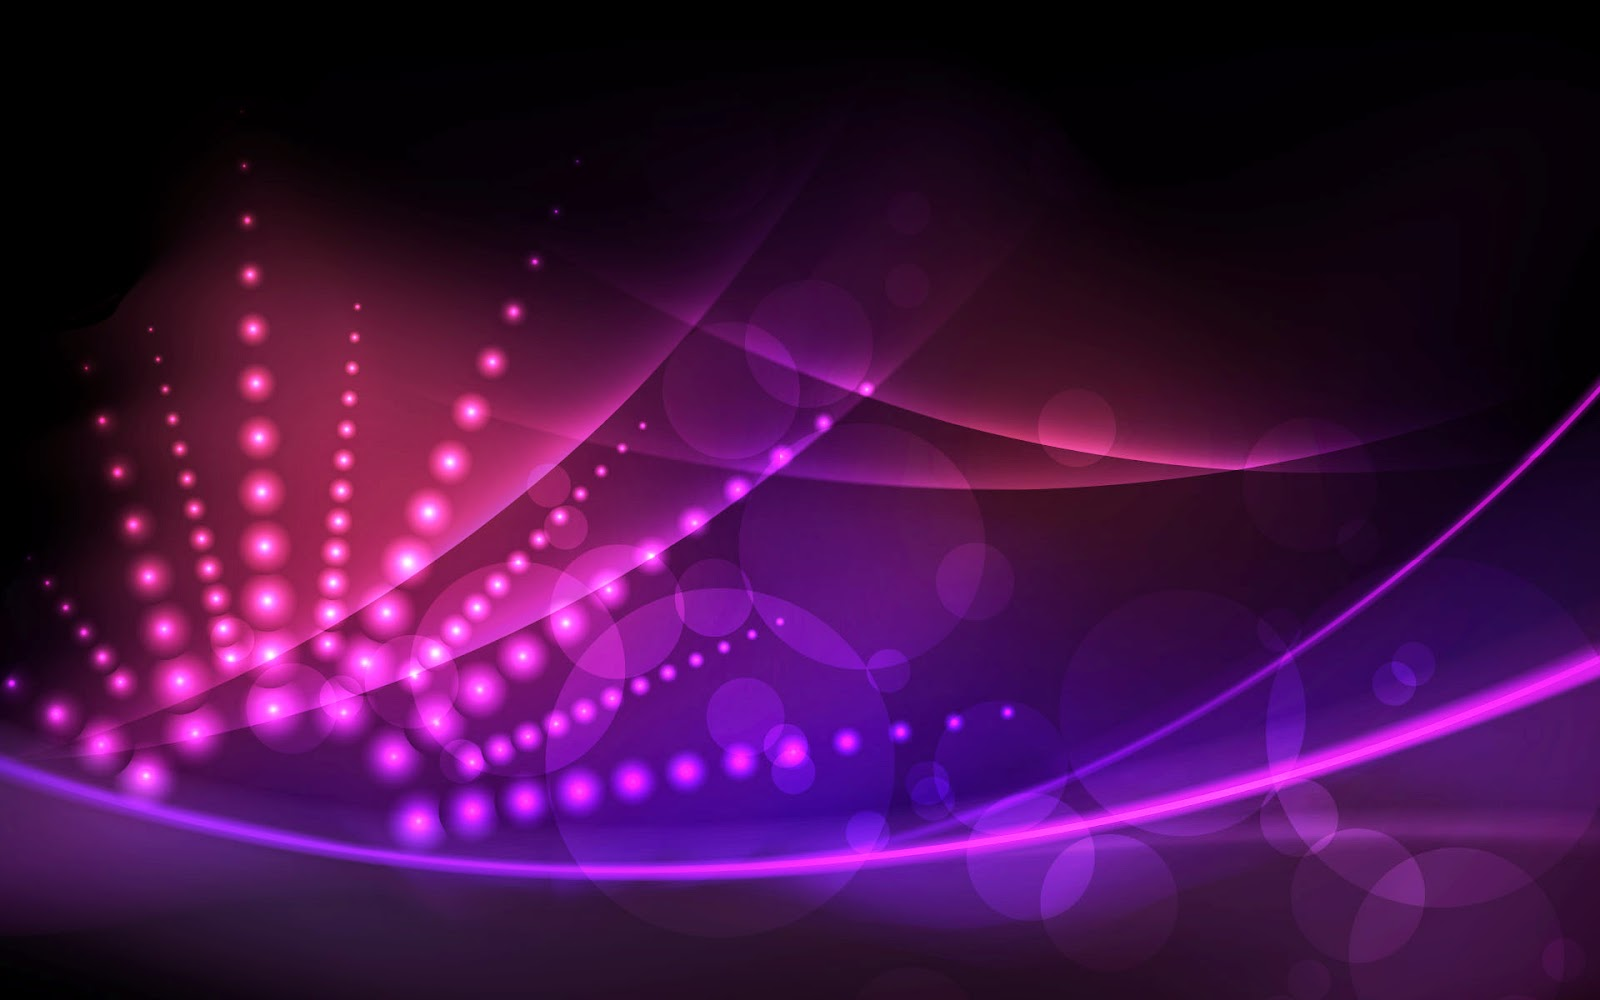 Awesome 18 HD Neon Glow Wallpapers